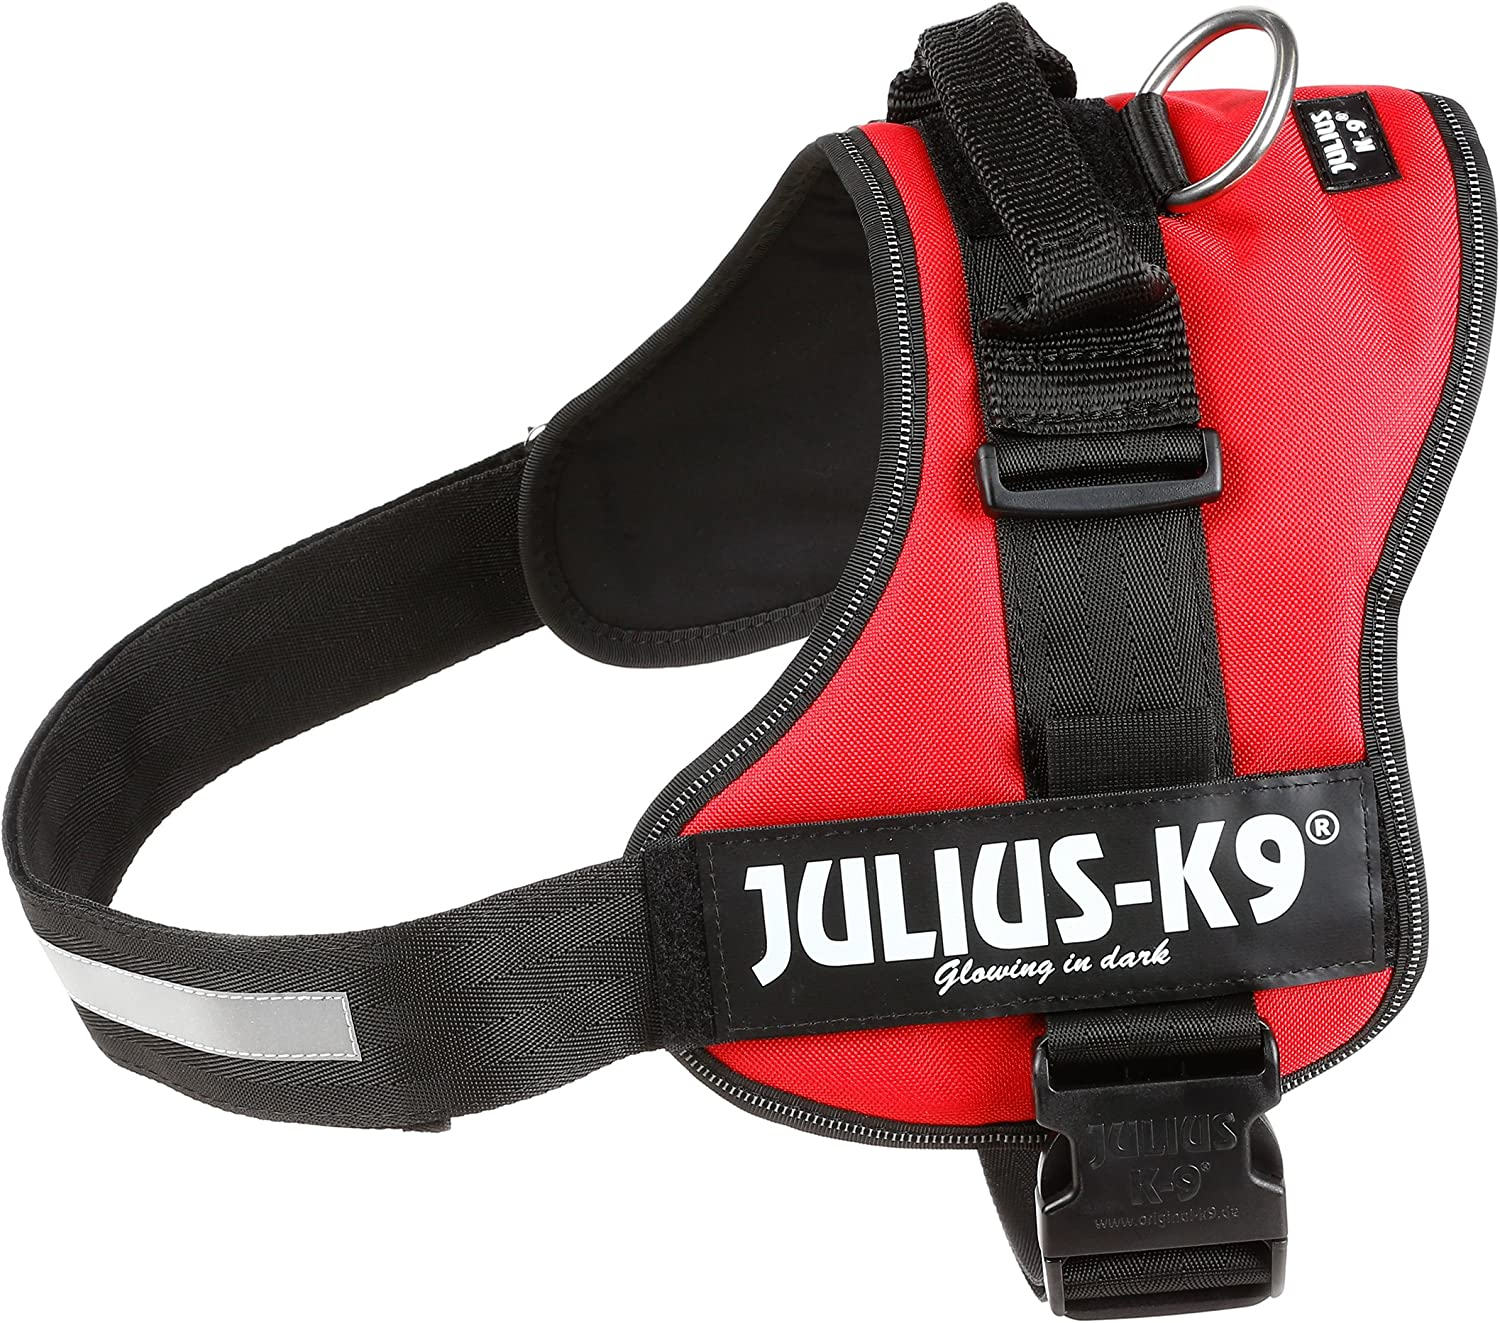 Julius-K9, Talla 3, 82-118 cm, Rojo: Amazon.es: Productos para ...